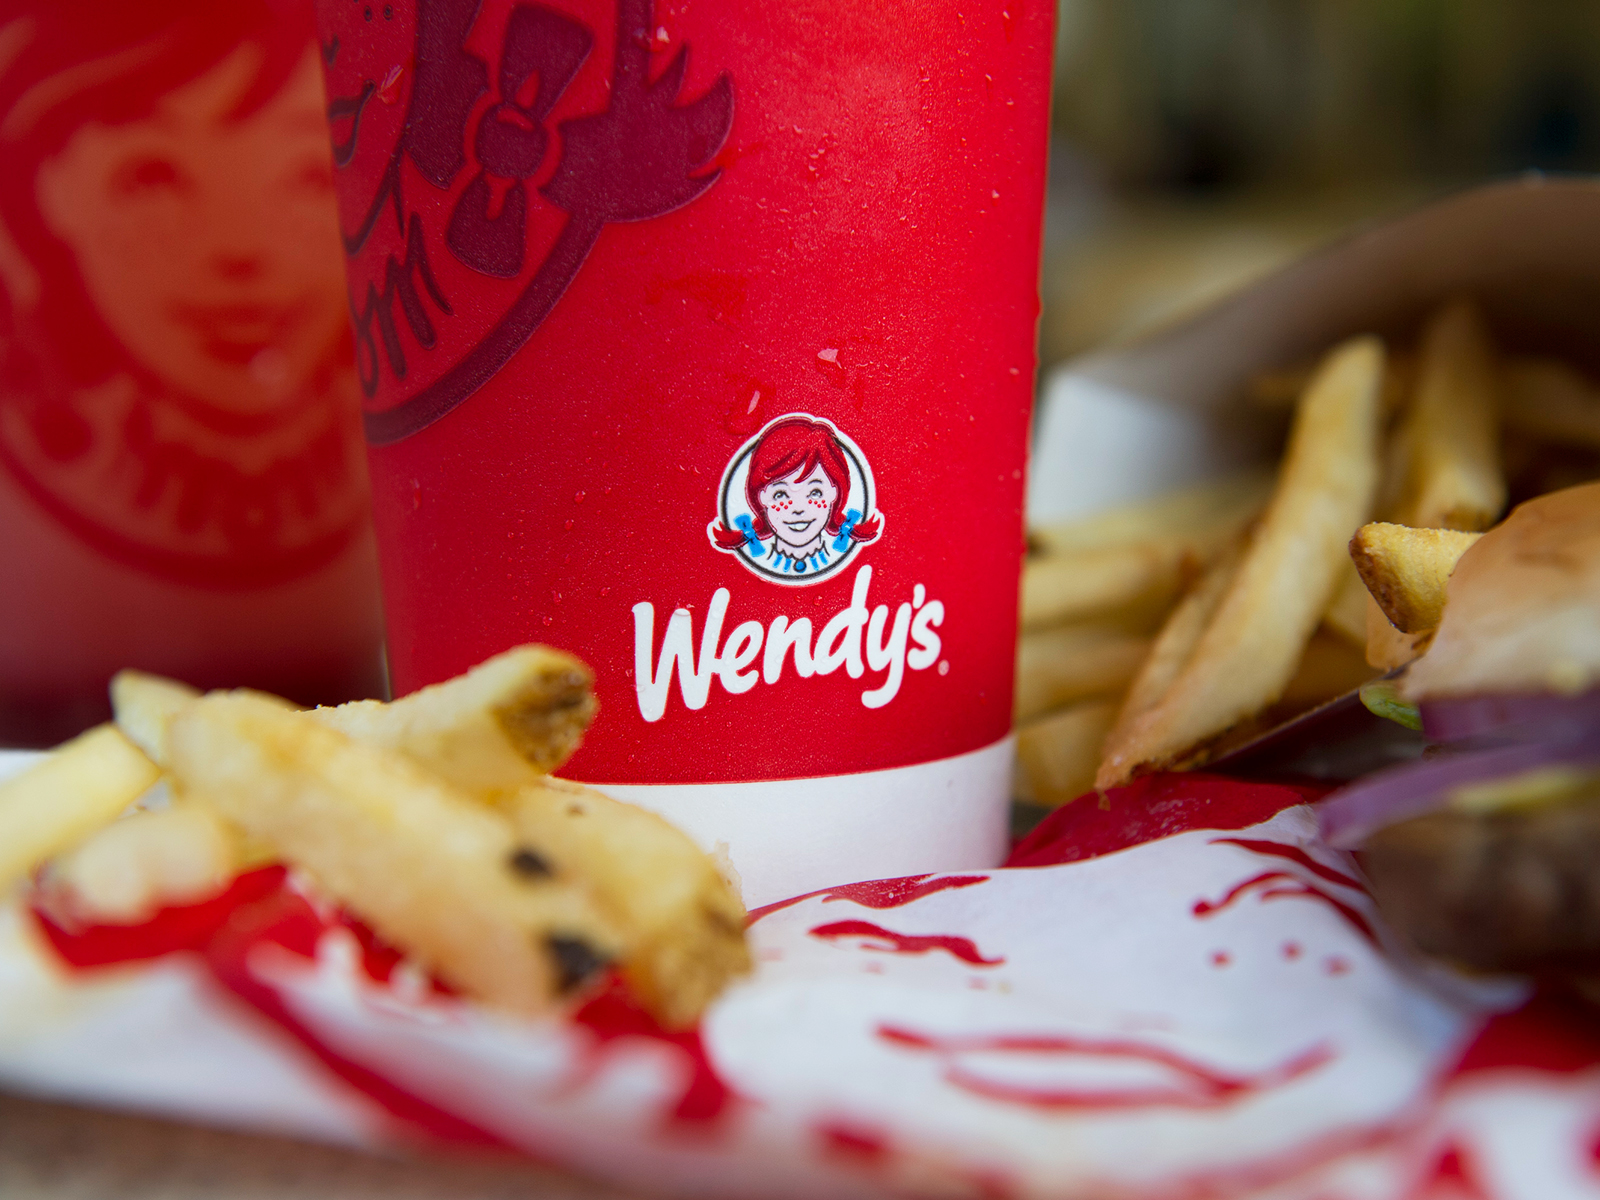 wendys social media account on reddit